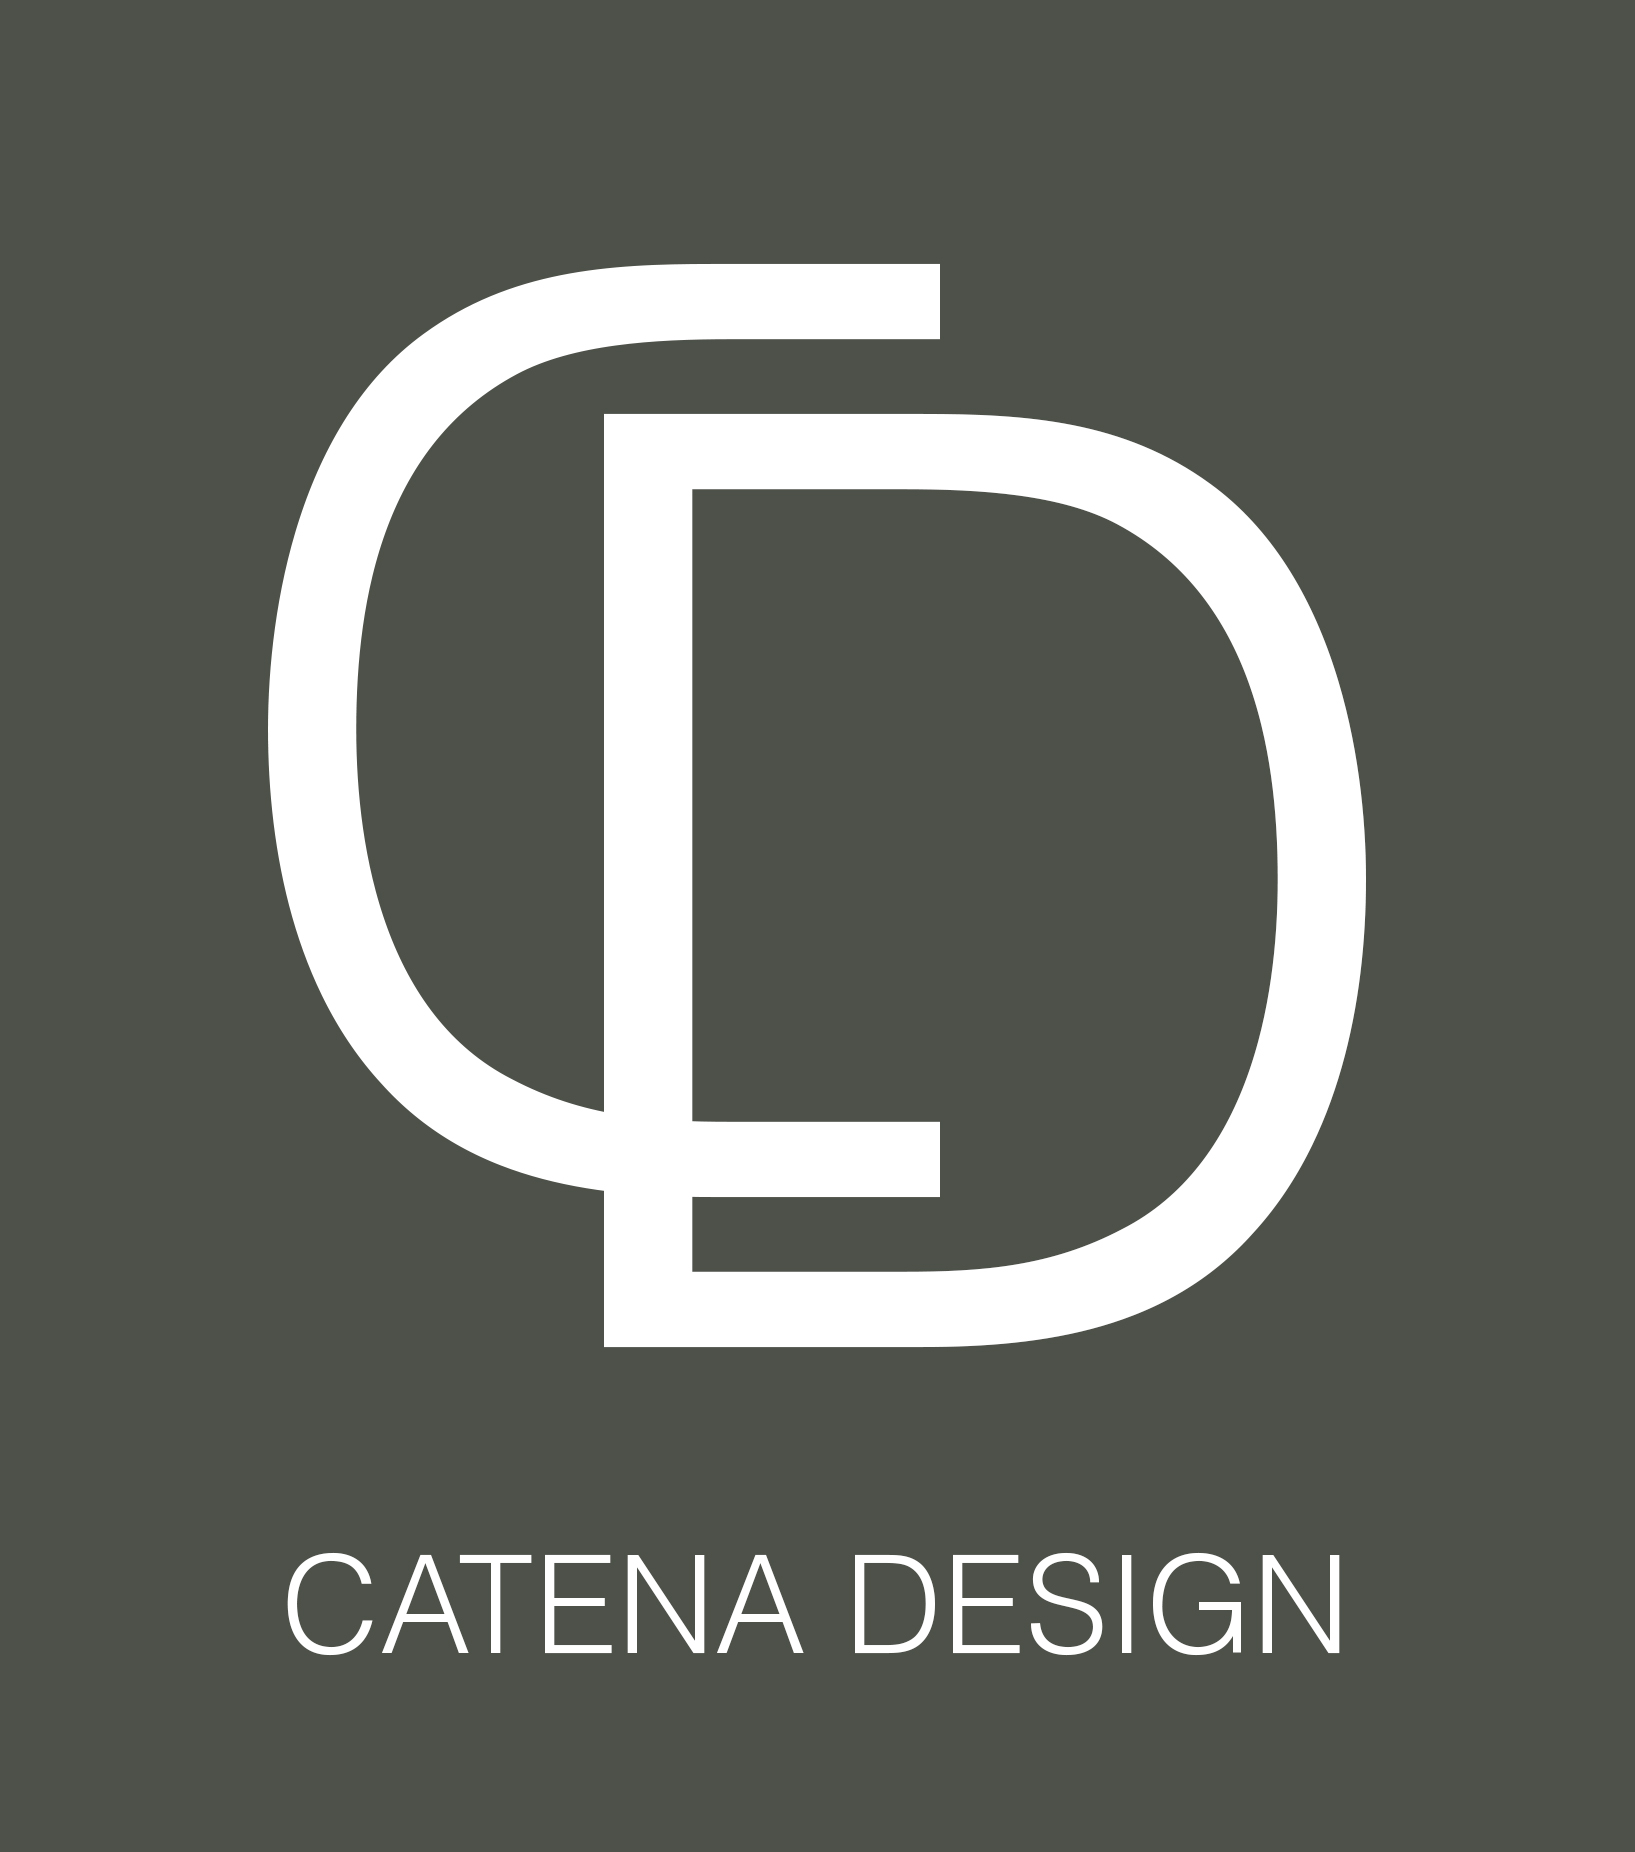 catenadesign